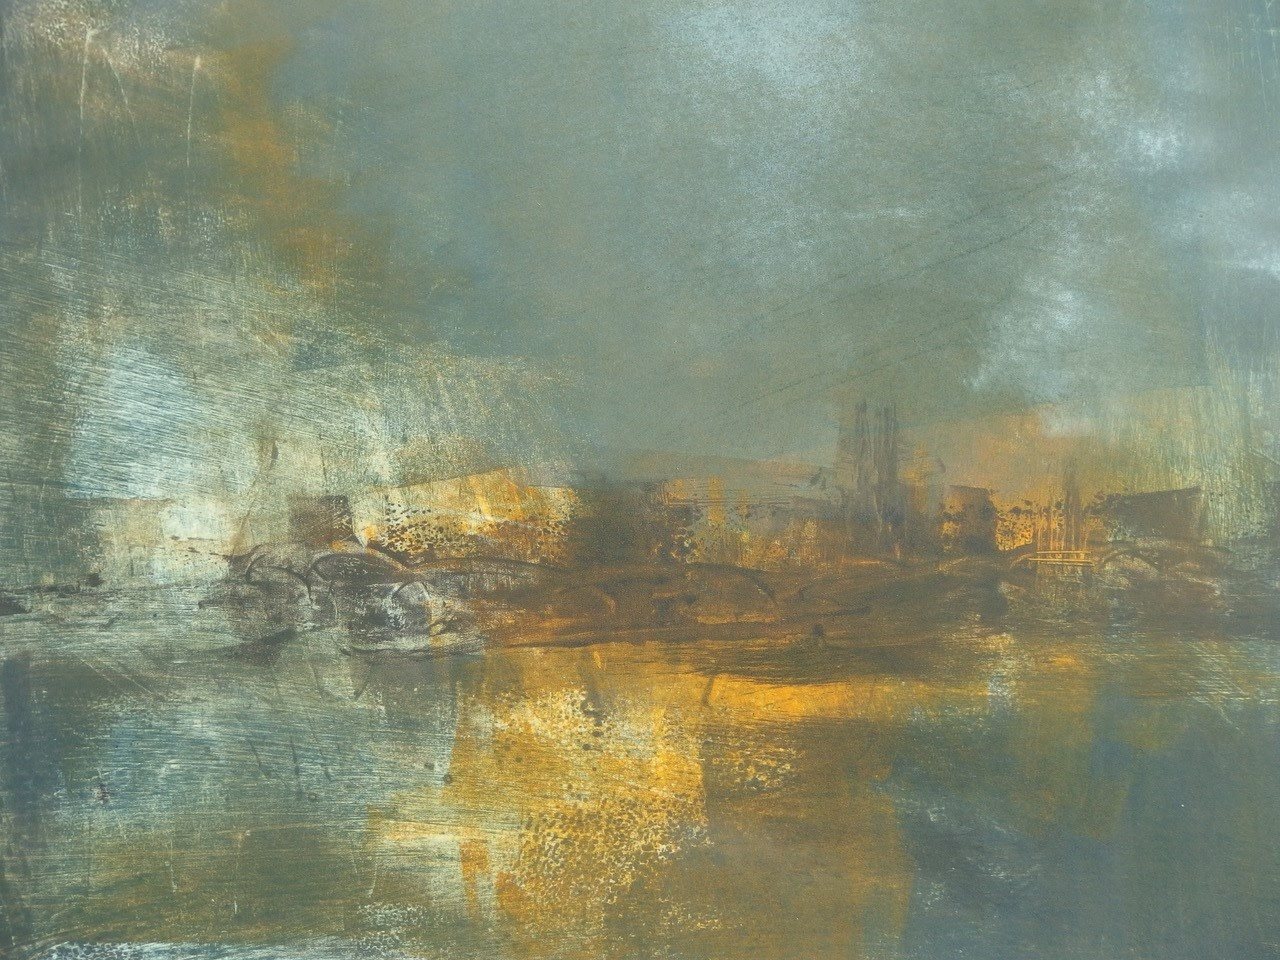 <span class=&#34;link fancybox-details-link&#34;><a href=&#34;/artists/61-kate-dicker-re/works/9660/&#34;>View Detail Page</a></span><div class=&#34;artist&#34;><span class=&#34;artist&#34;><strong>Kate Dicker RE</strong></span></div><div class=&#34;title&#34;><em>River Industry</em></div><div class=&#34;medium&#34;>litho</div>